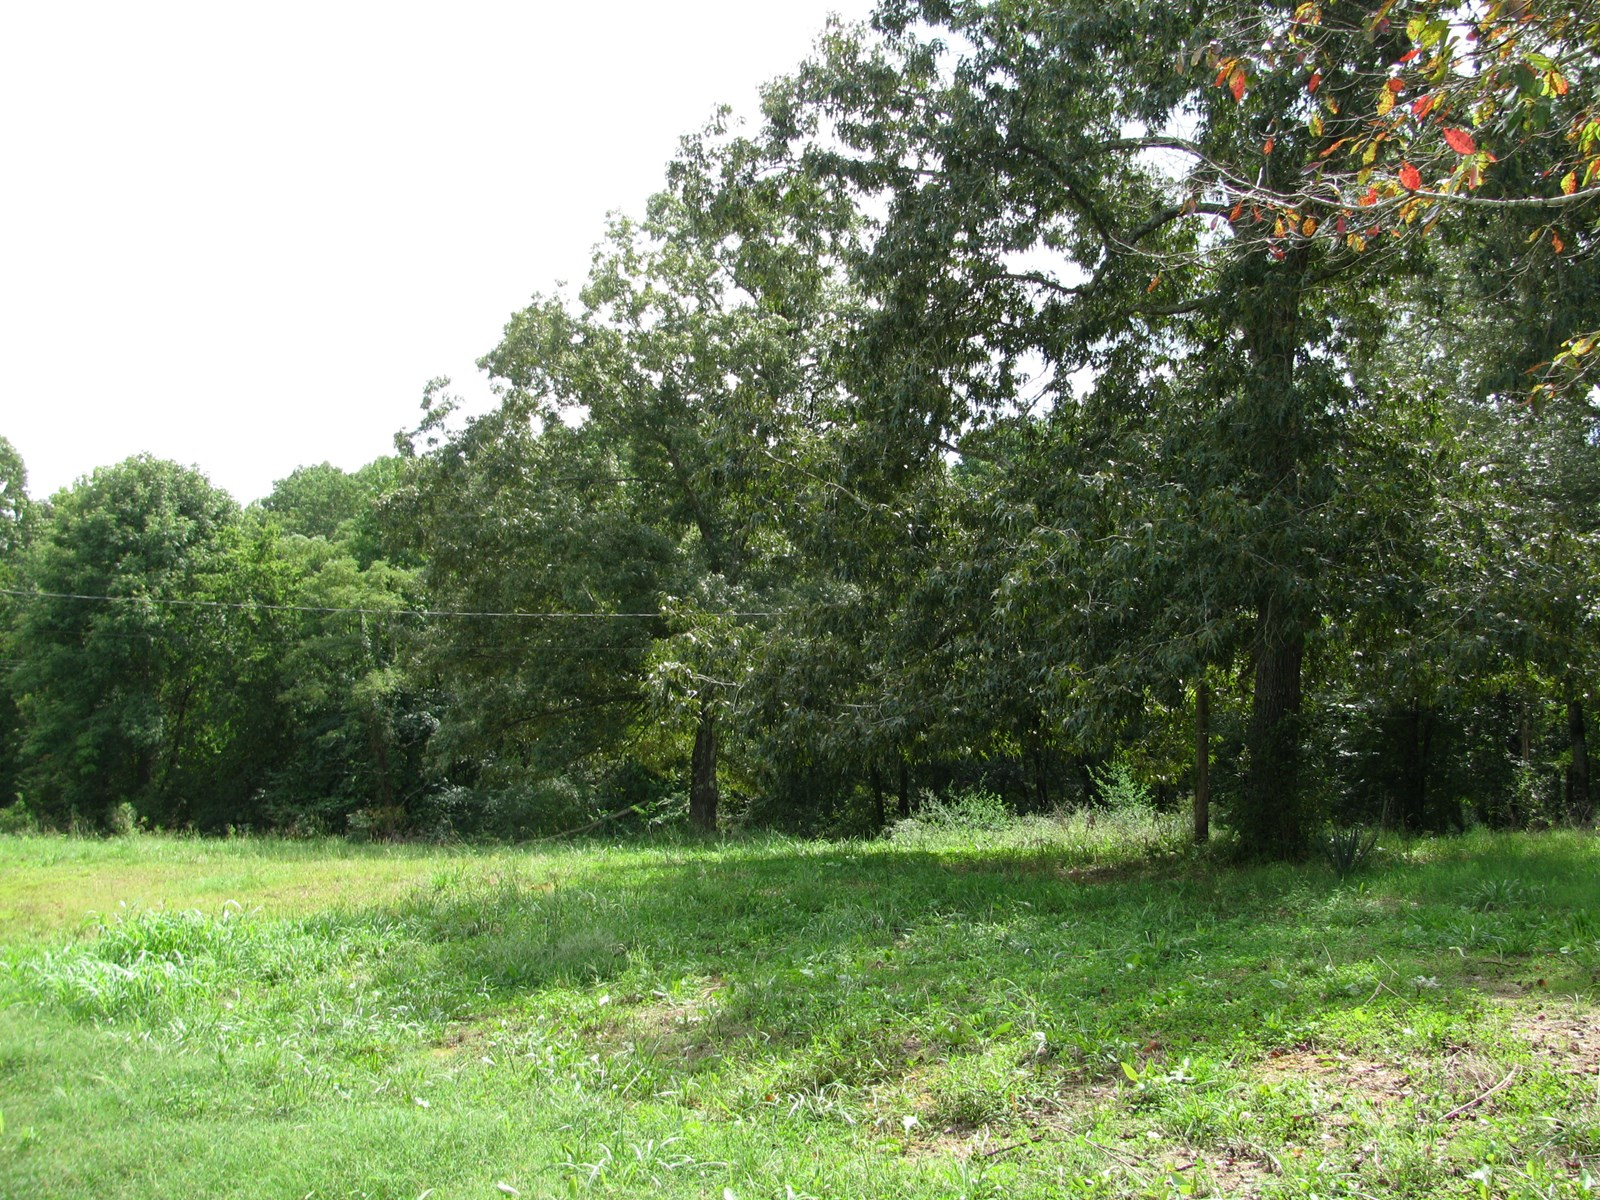 COUNTRY LAND FOR SALE IN TN, OLD TRAILER, READY TO BUILD ON